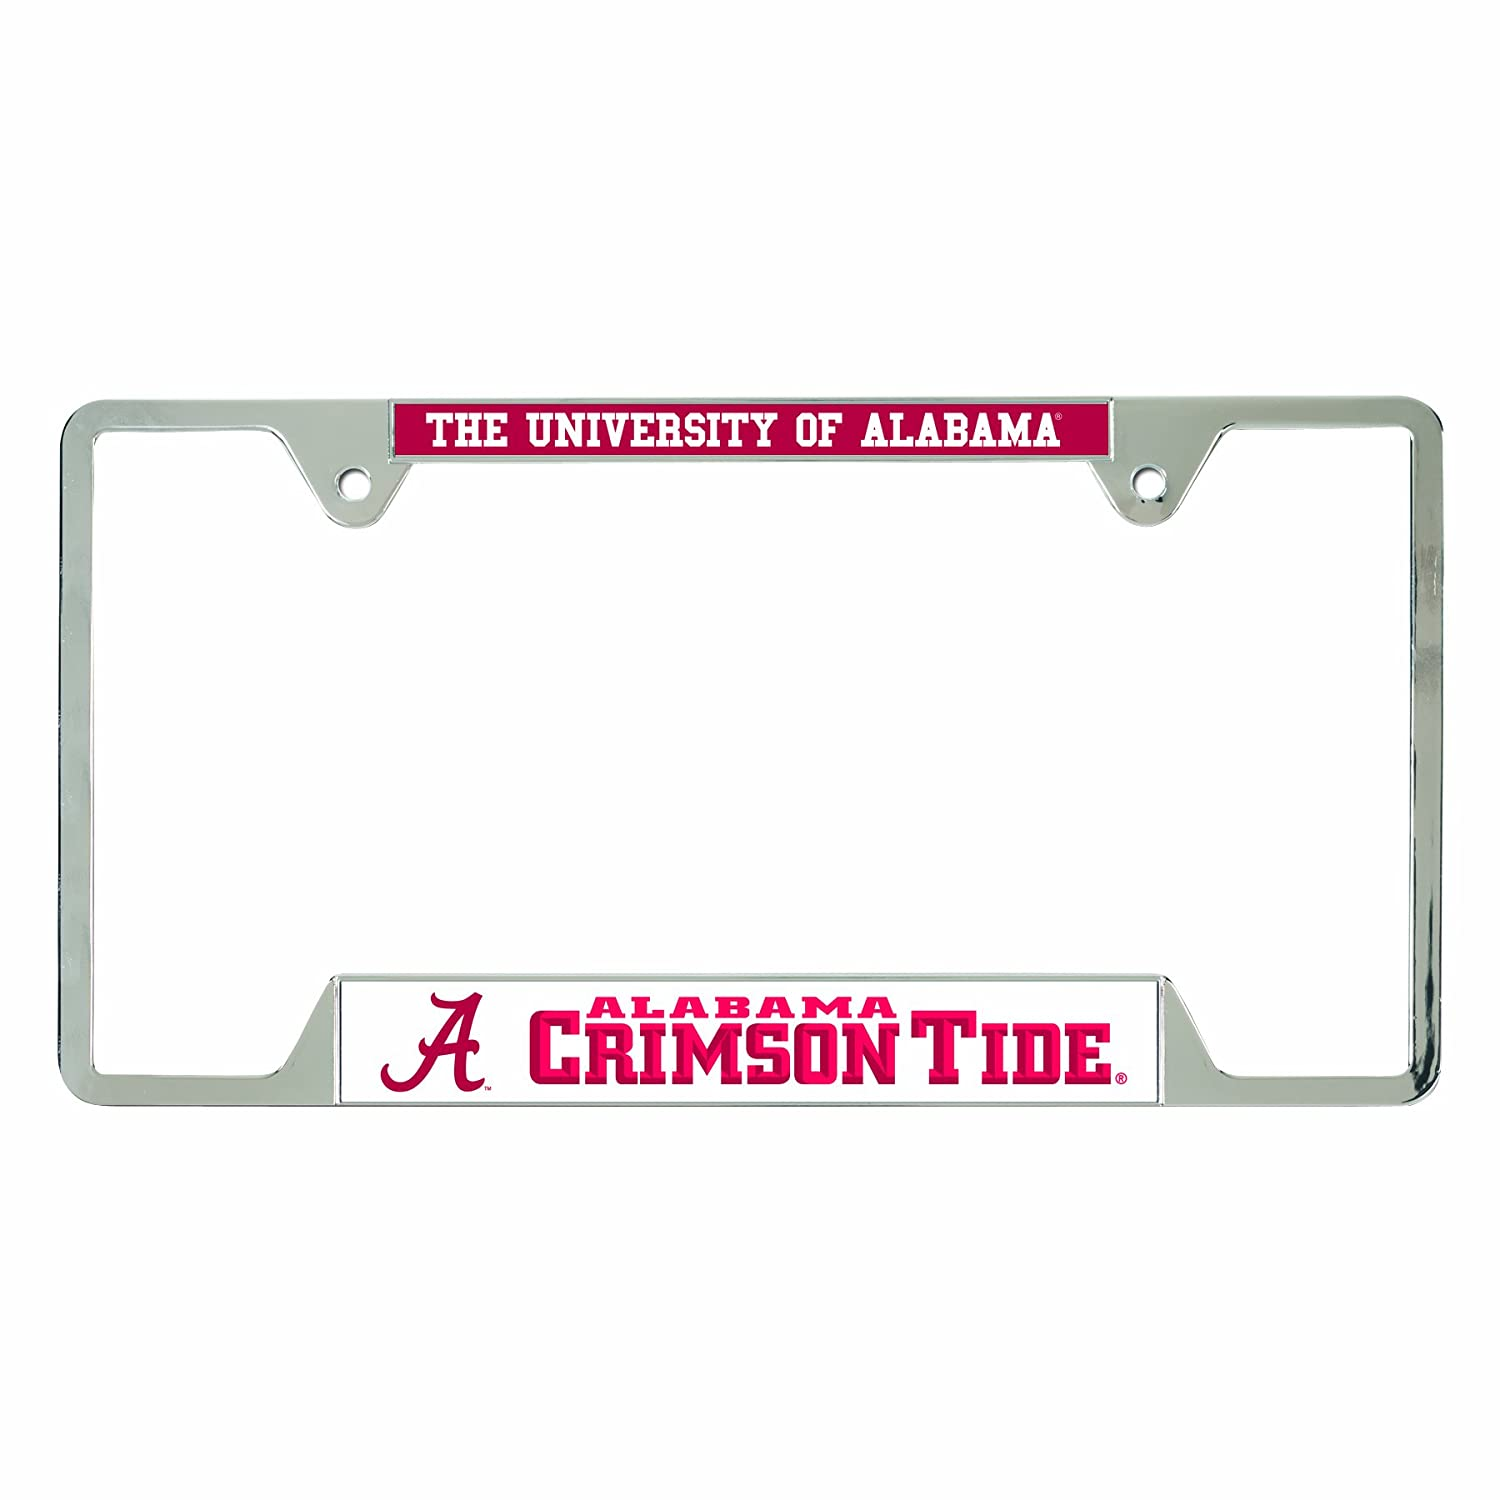 Amazon.com : WinCraft NCAA Alabama Crimson Tide License Plate Frames ...